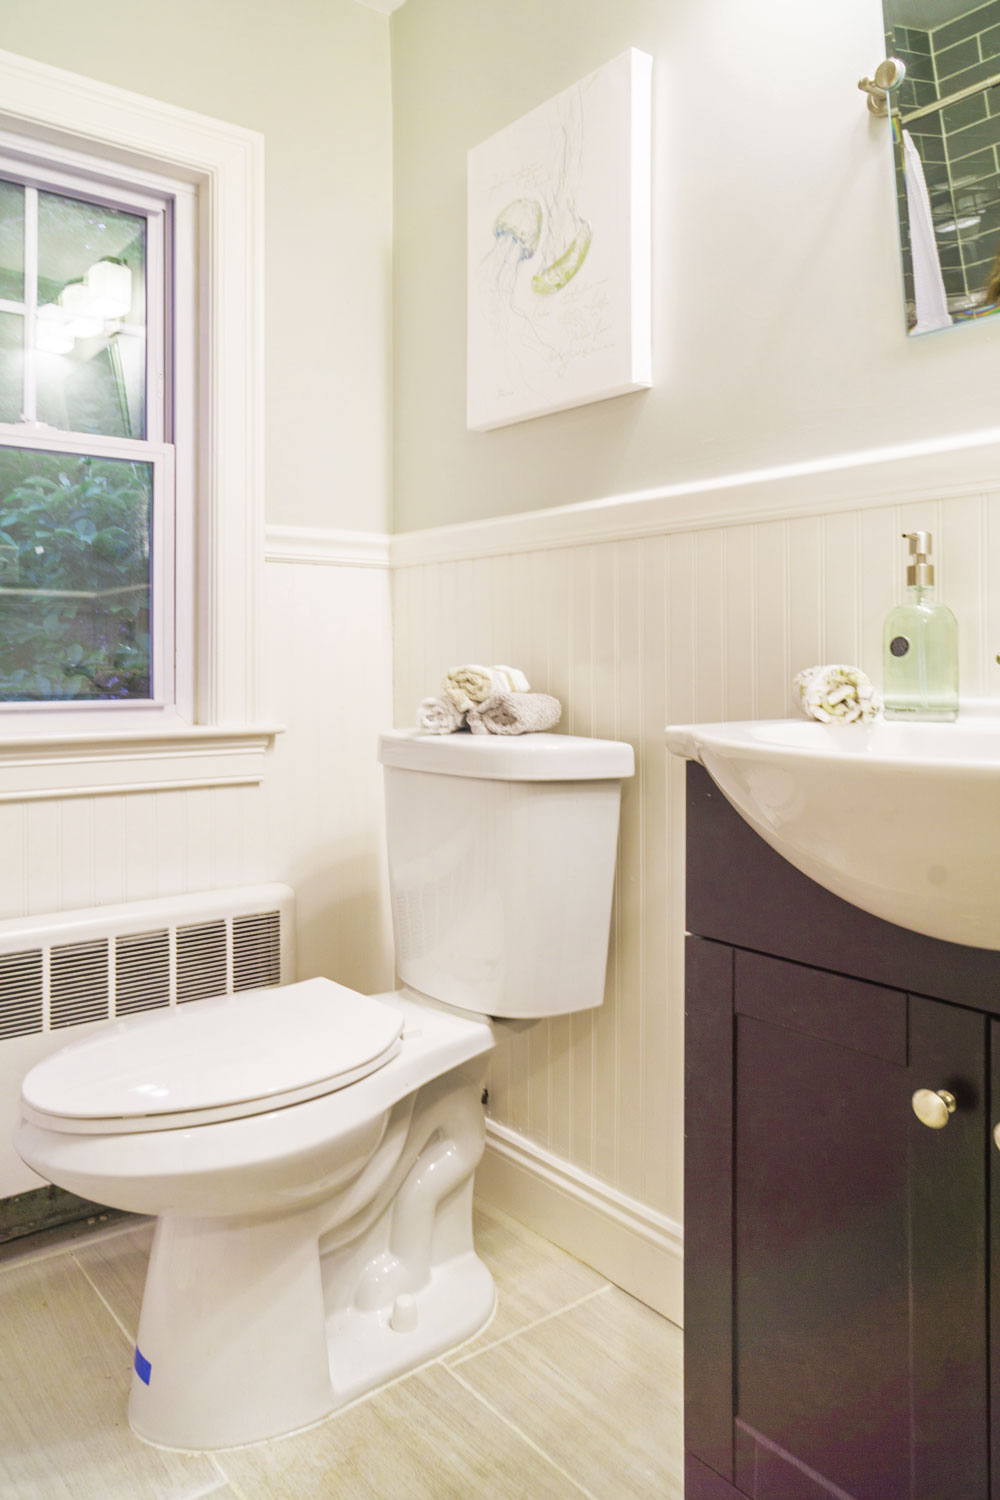 Bathroom home styling for new home sales.